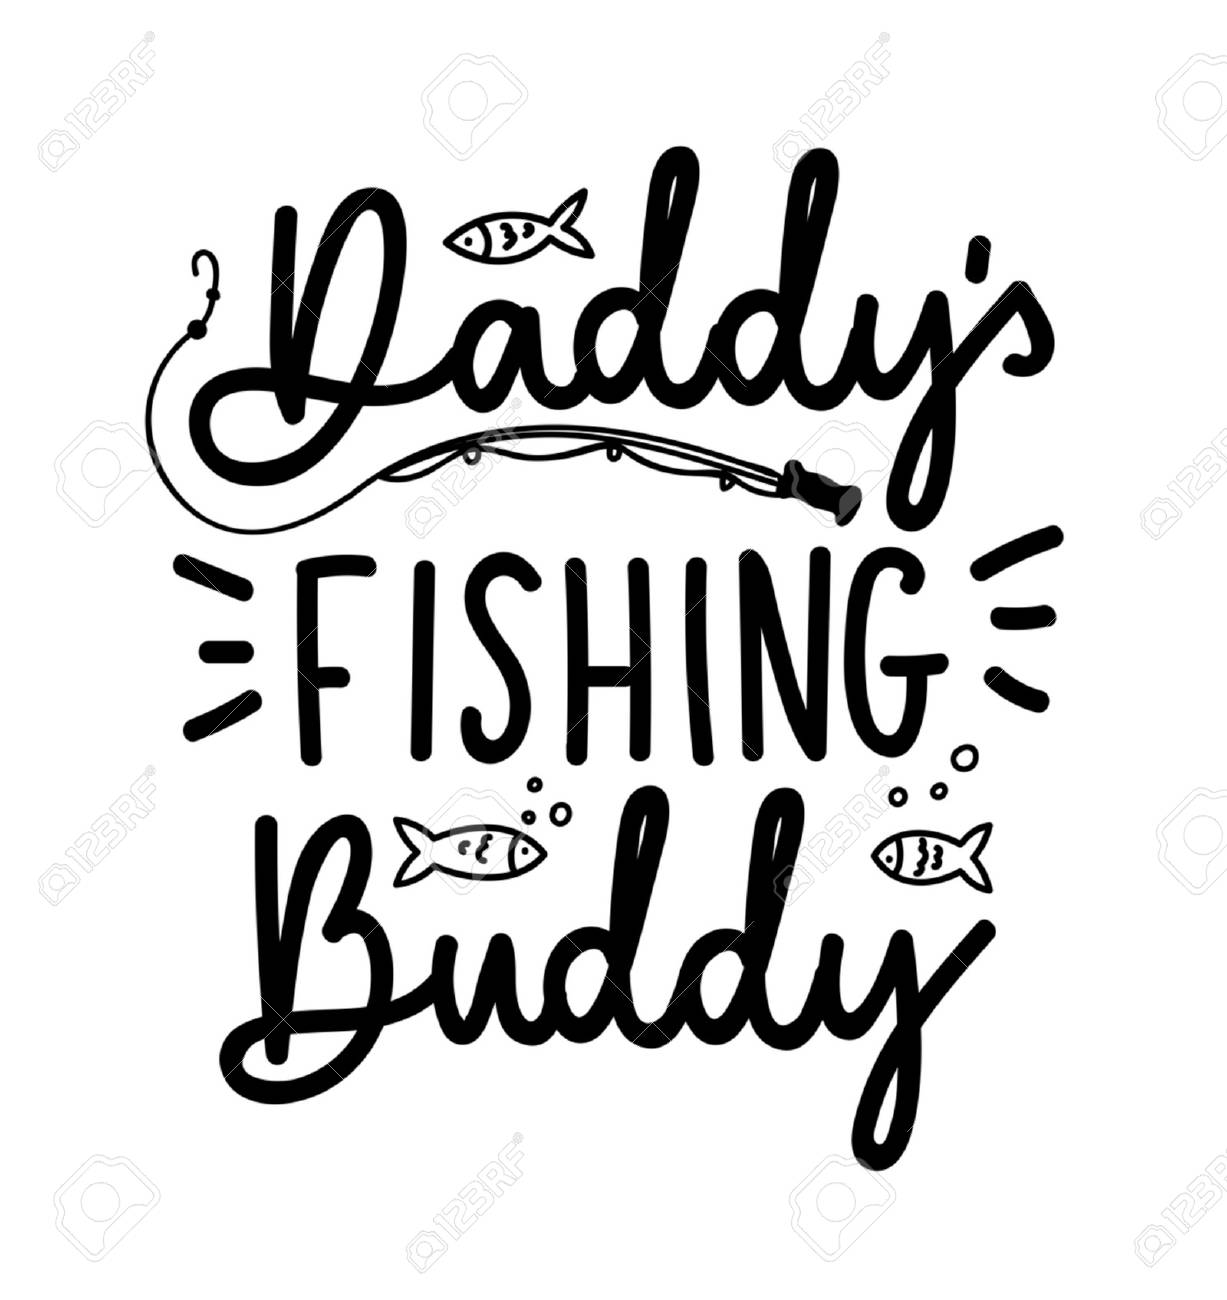 Download Daddy S Fishing Buddy Lettering Quote Isolated On White Background Cute Lettering With Doodles For Father And Son Vector Illustration Royalty Free Cliparts Vectors And Stock Illustration Image 103823879